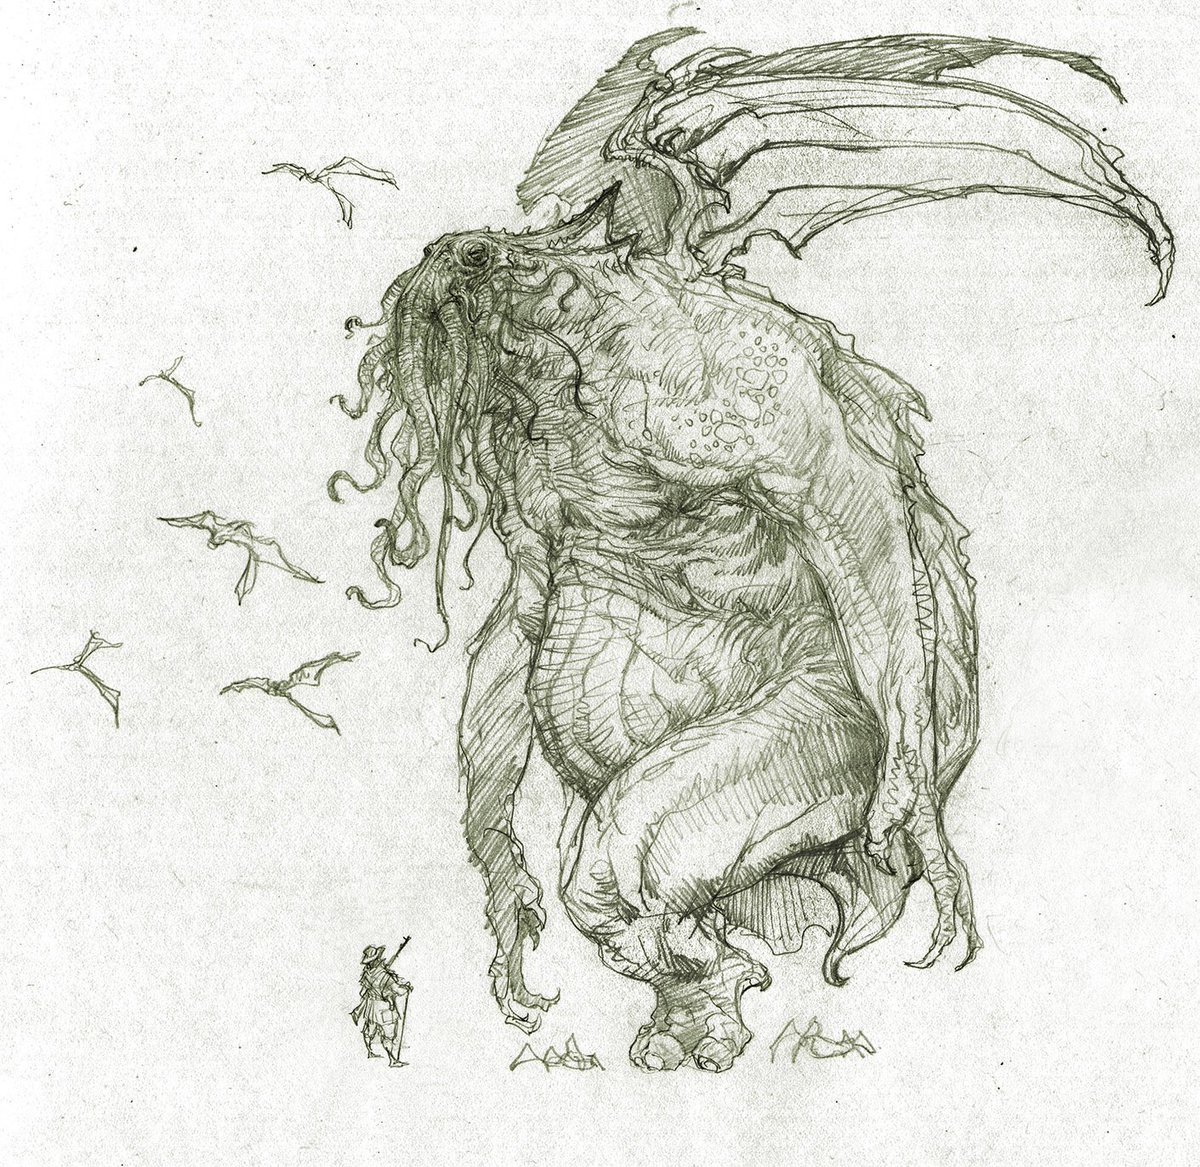 1200x1167 Richard Whitters On Twitter Ok, Last Cthulhu Sketch And Last